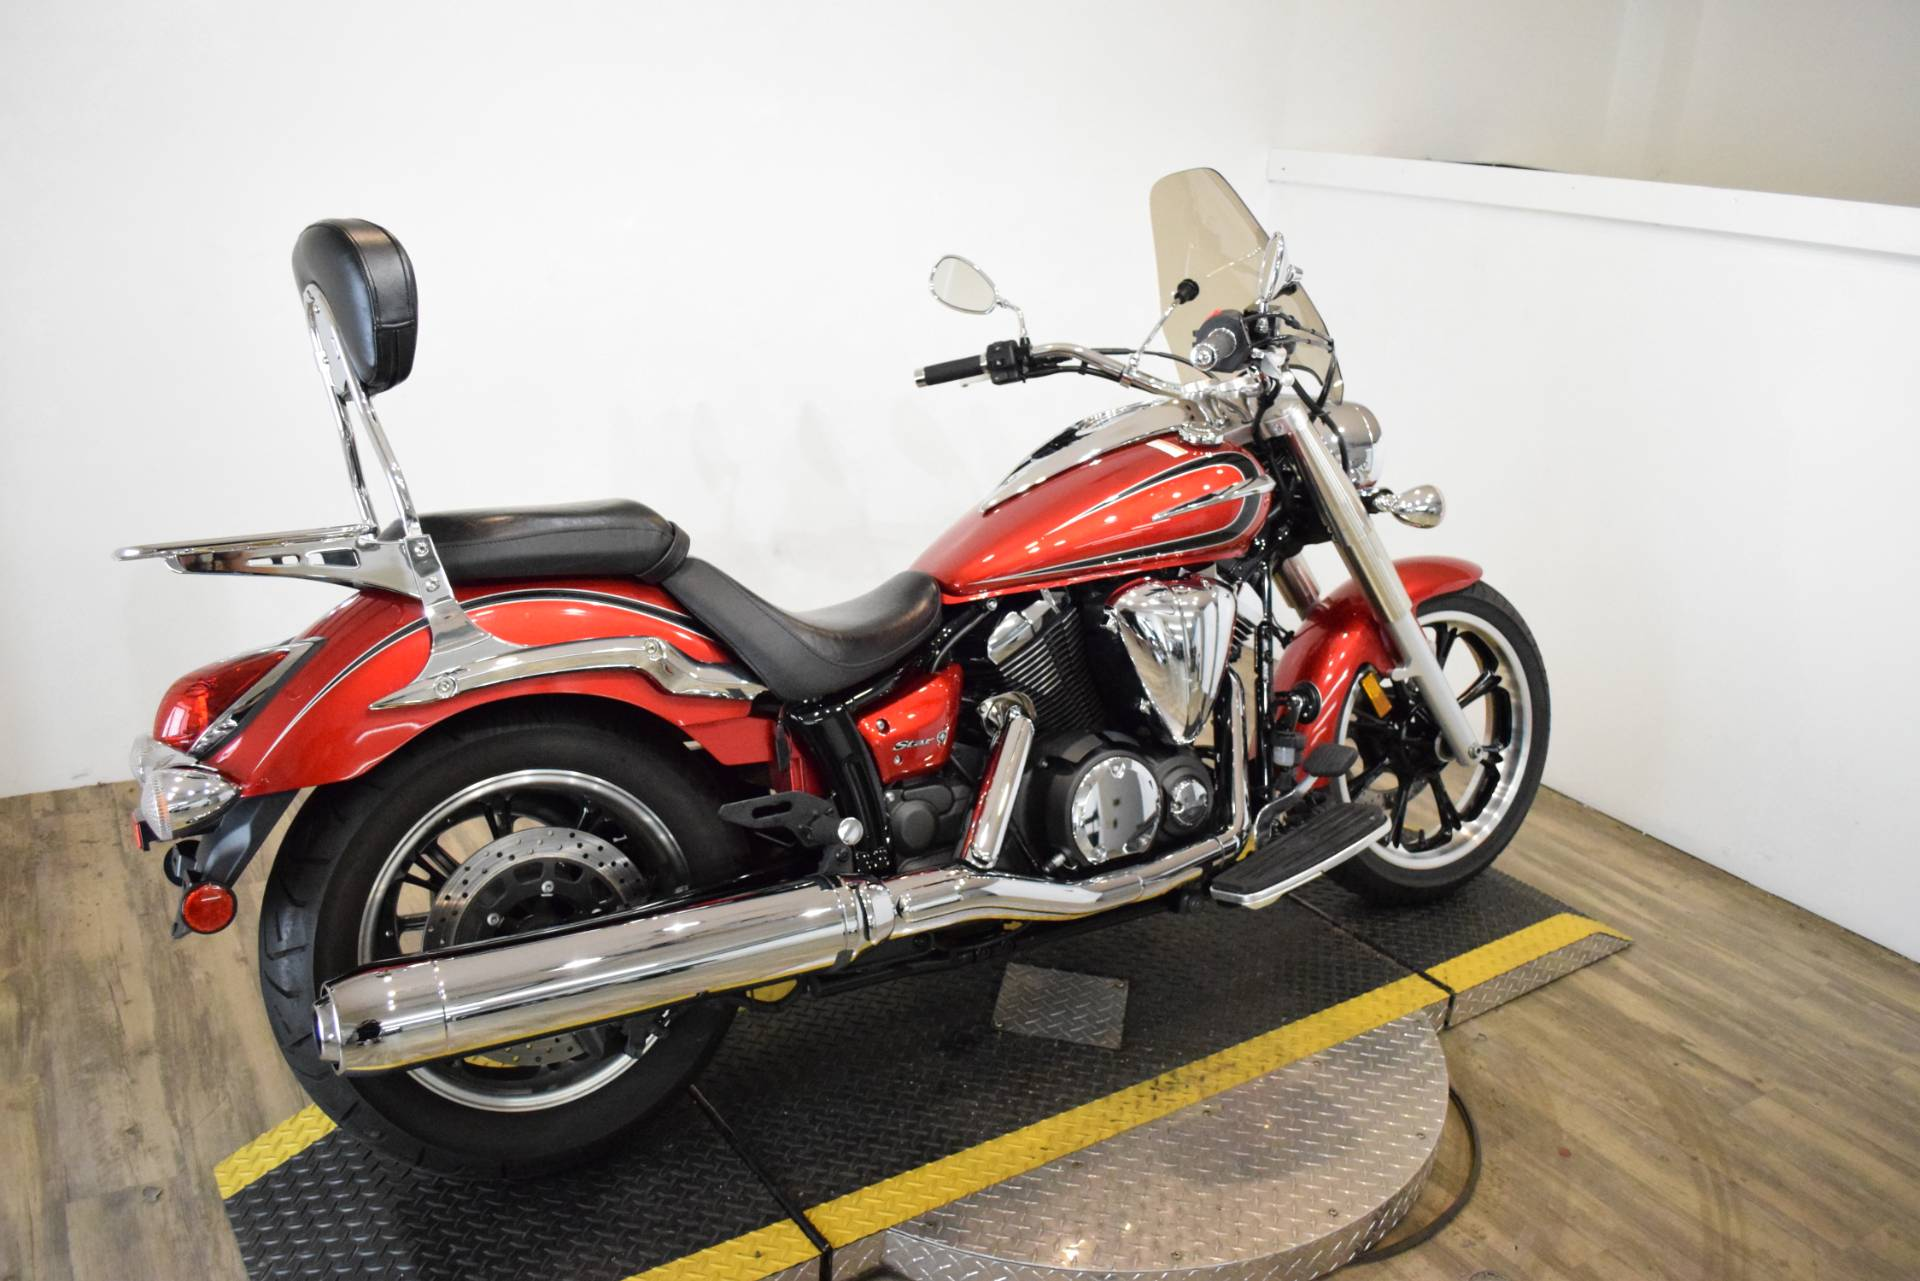 2012 Yamaha V Star 950 in Wauconda, Illinois - Photo 9